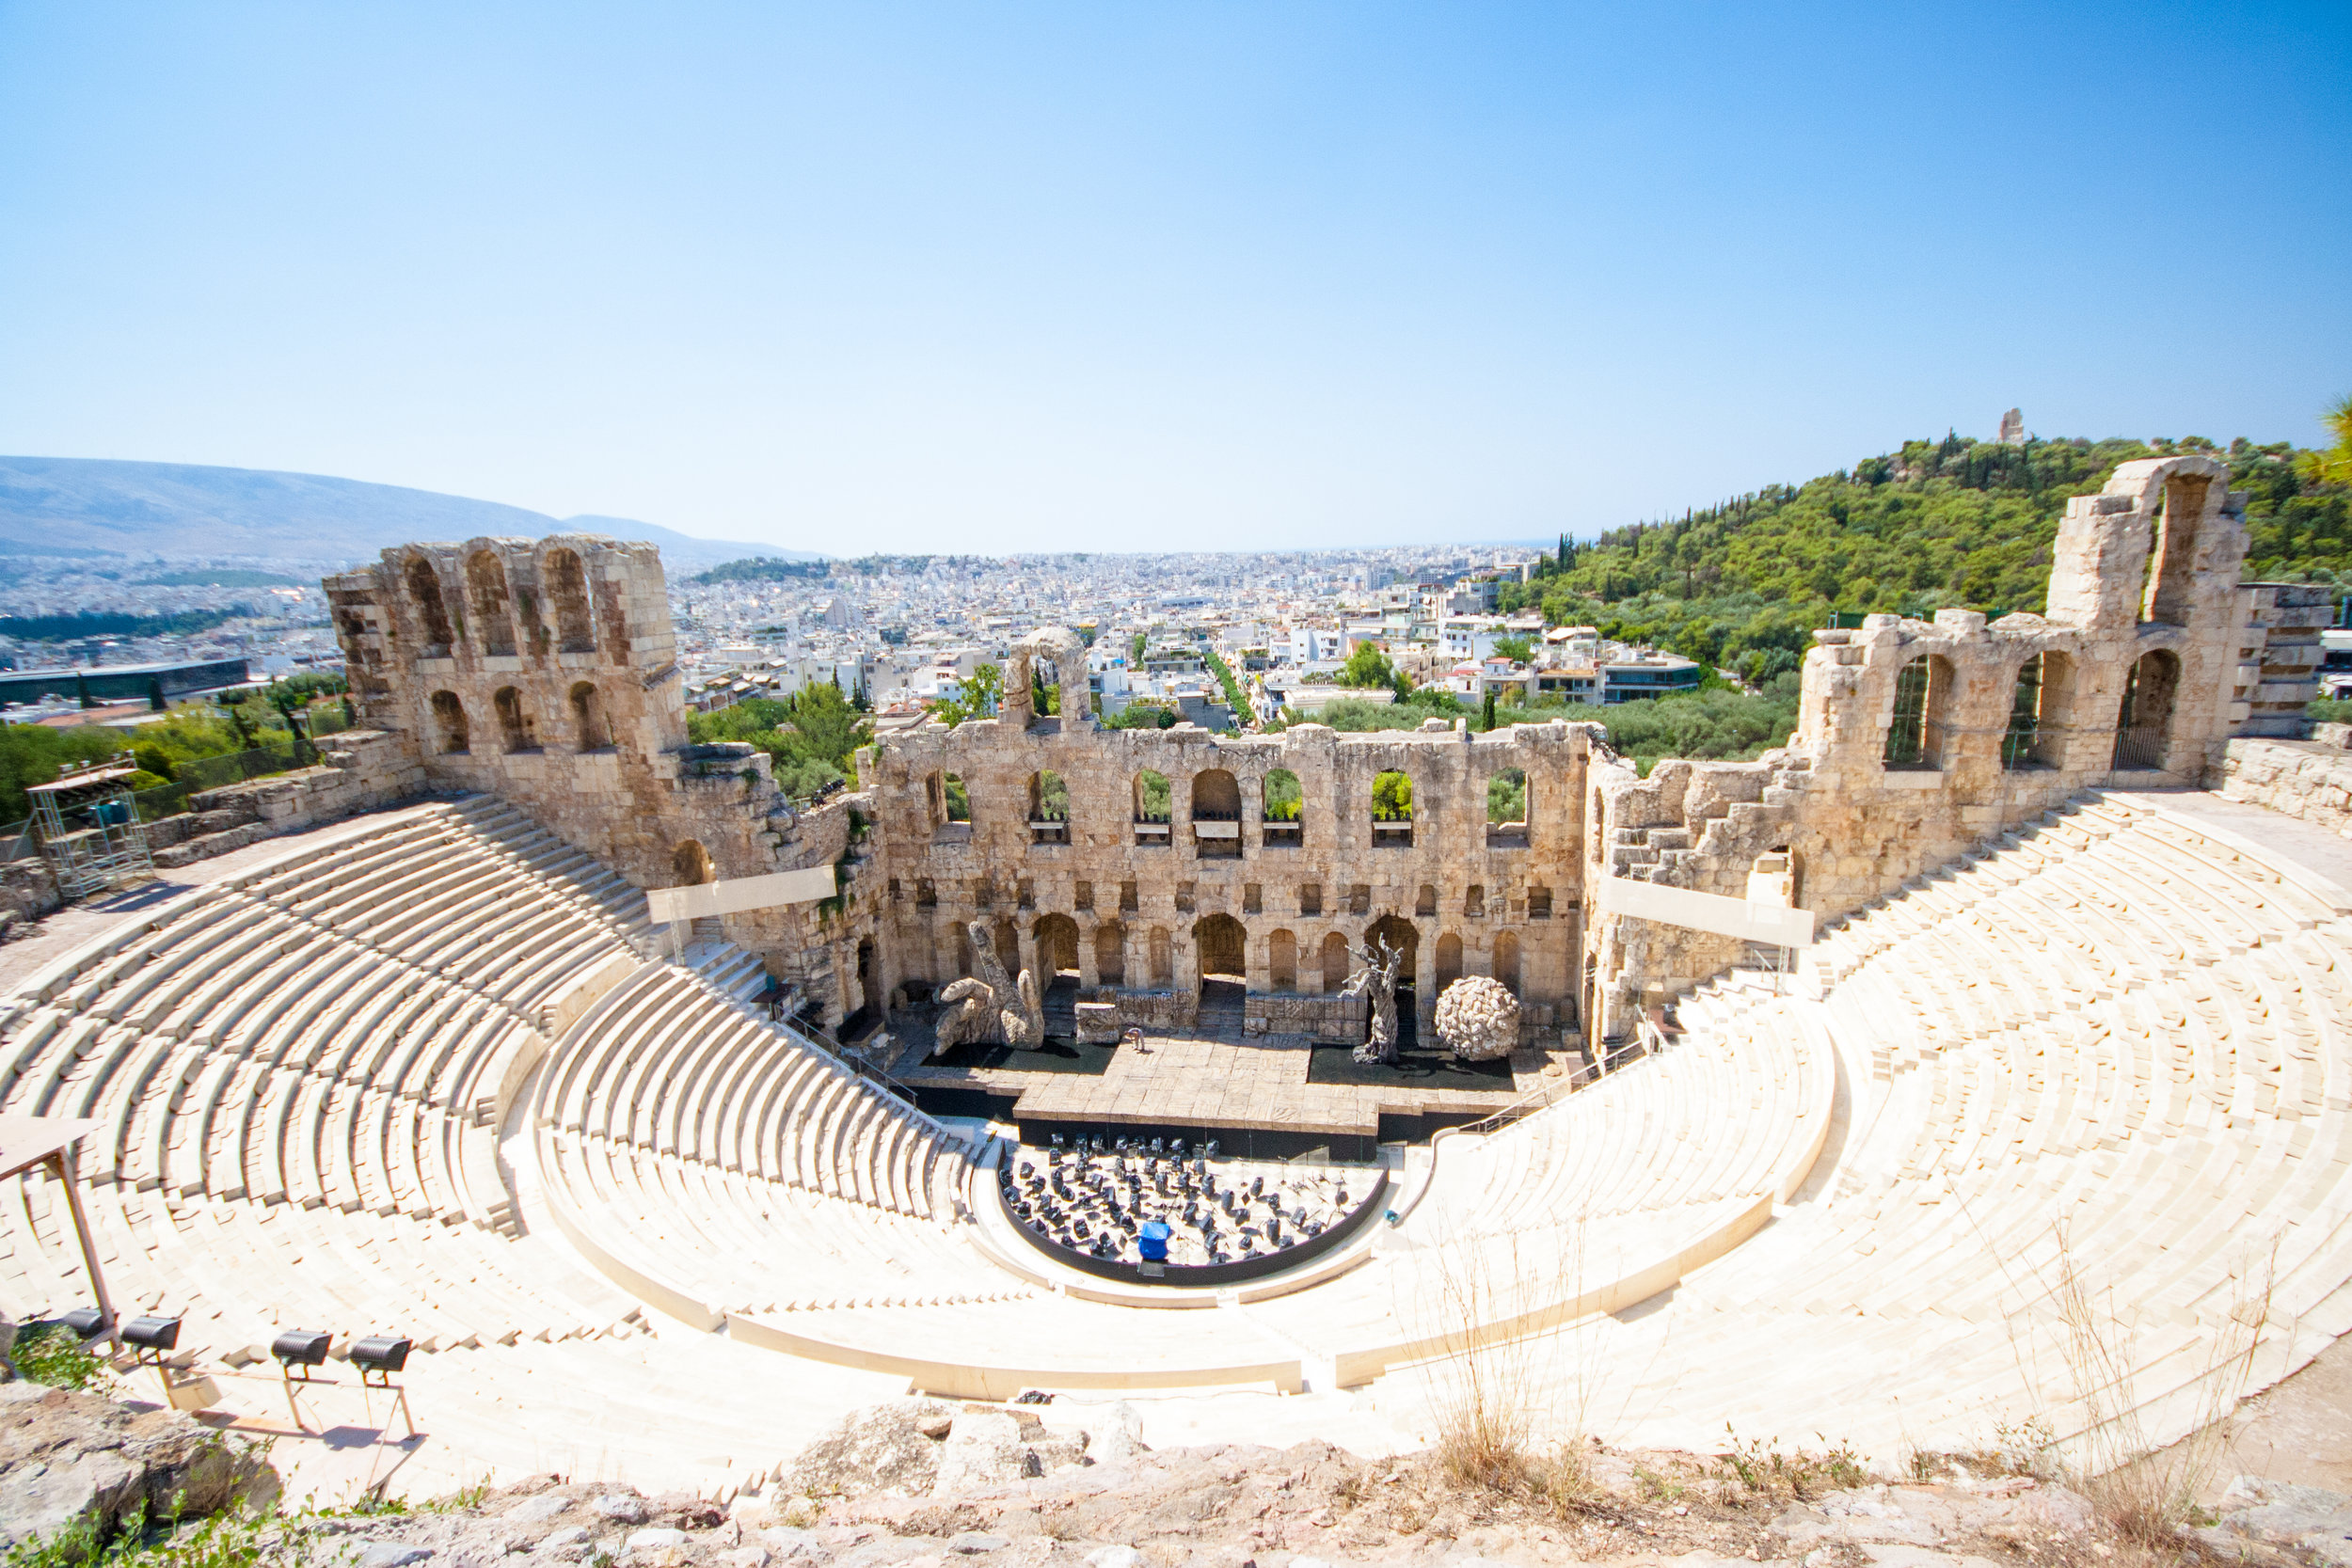 The Odeum of Herodes Atticus is a stone theatre on the southwest slope of the Acropolis and was completed in 161 AD.  They still hold regular concerts here.